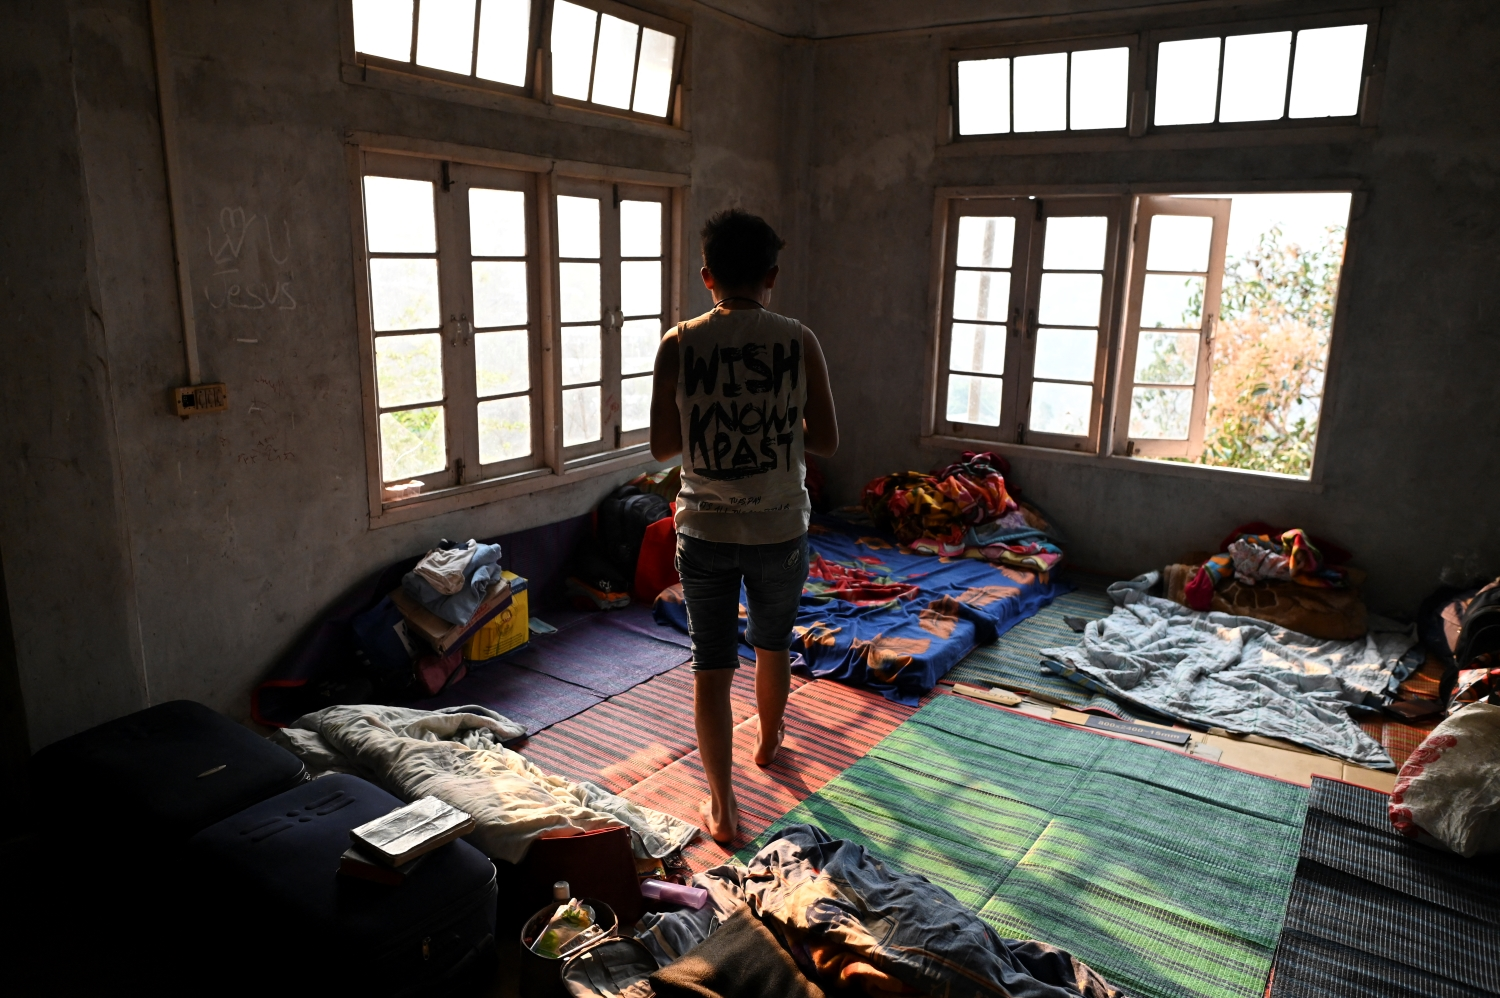 A police officer who fled Myanmar stands in a temporary shelter at an undisclosed location in India's northeastern state of Mizoram on March 13. Mizoram officials said in mid-March the state was harbouring at least 383 Myanmar public servants who had deserted their posts, of whom 98 percent claimed to be from the police and fire service. (AFP)